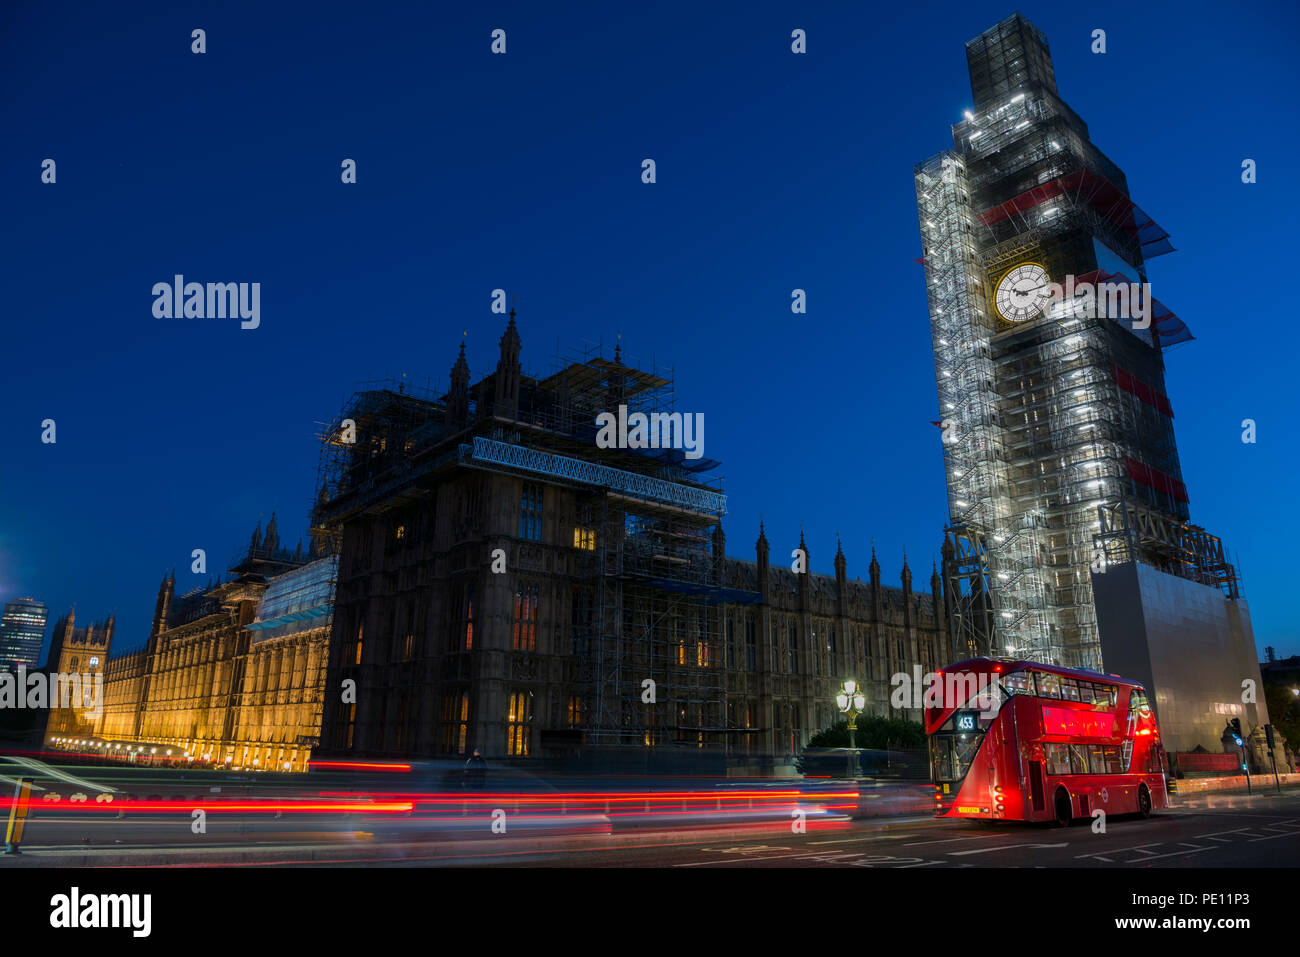 Big Ben renovation works on Parliament's bell, clock and tower, London, United Kingdom. Stock Photo